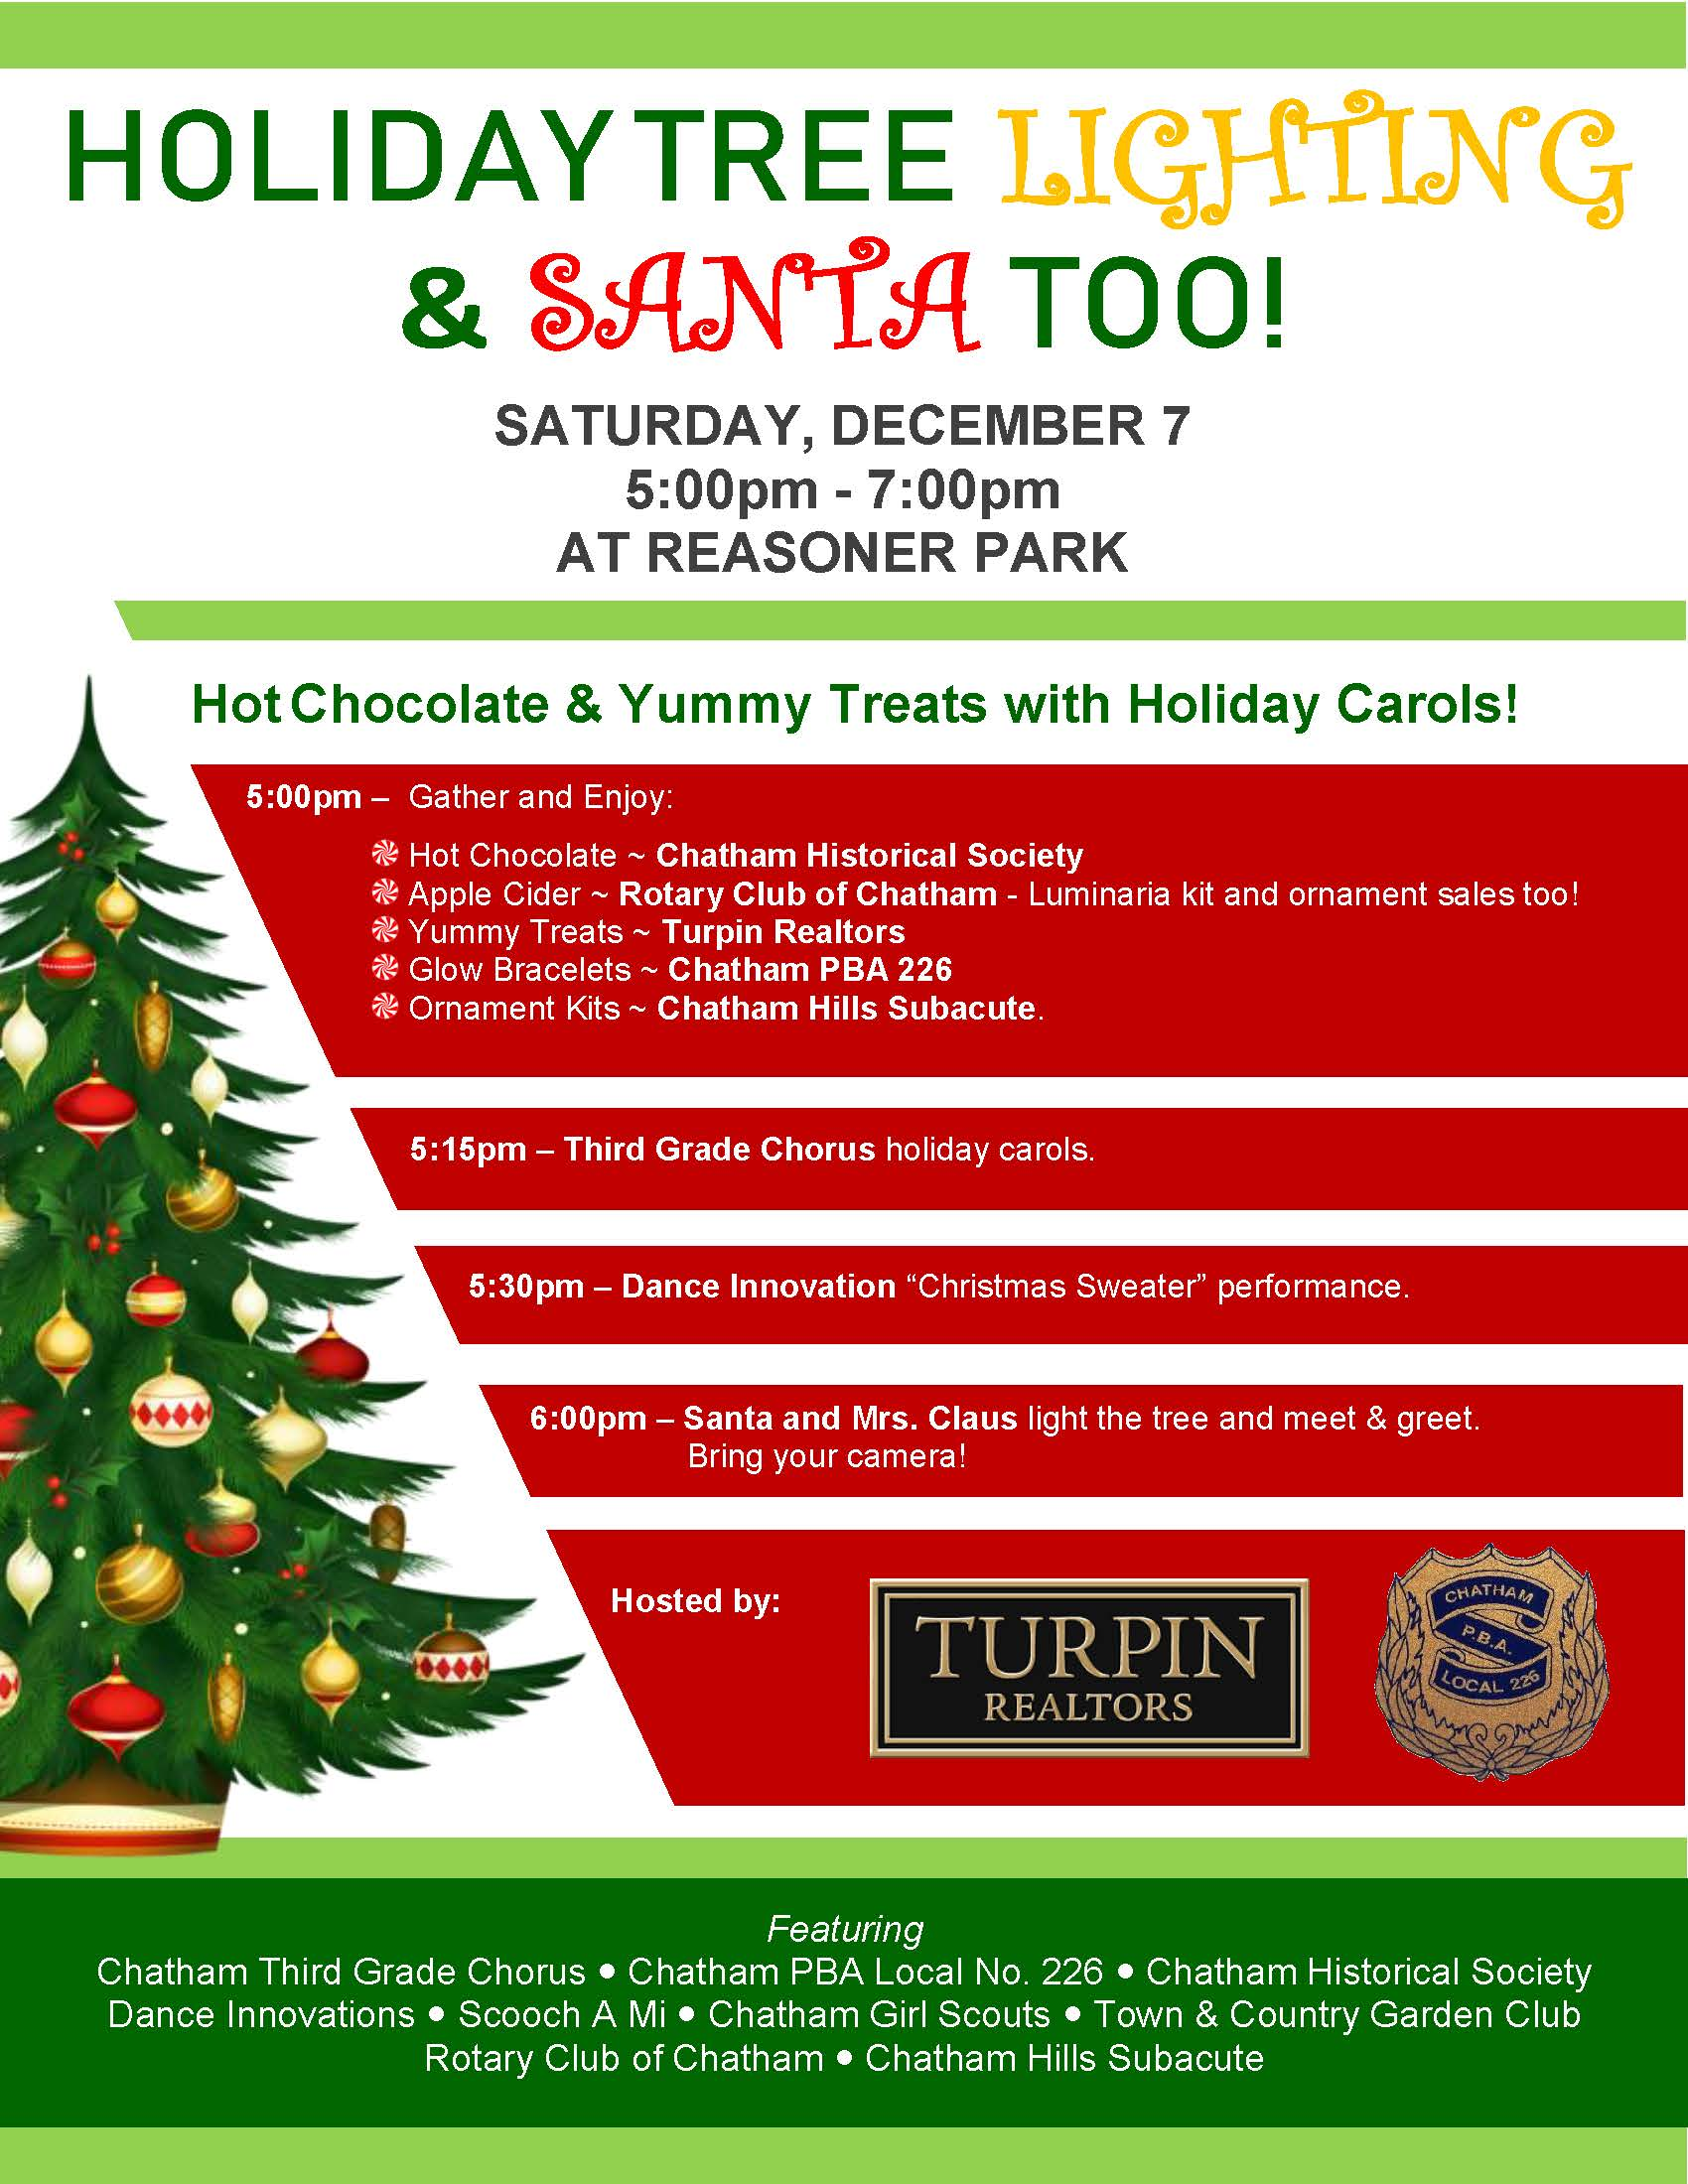 Chatham Holiday Tree Lighting & Santa Visit @ Reasoner Park